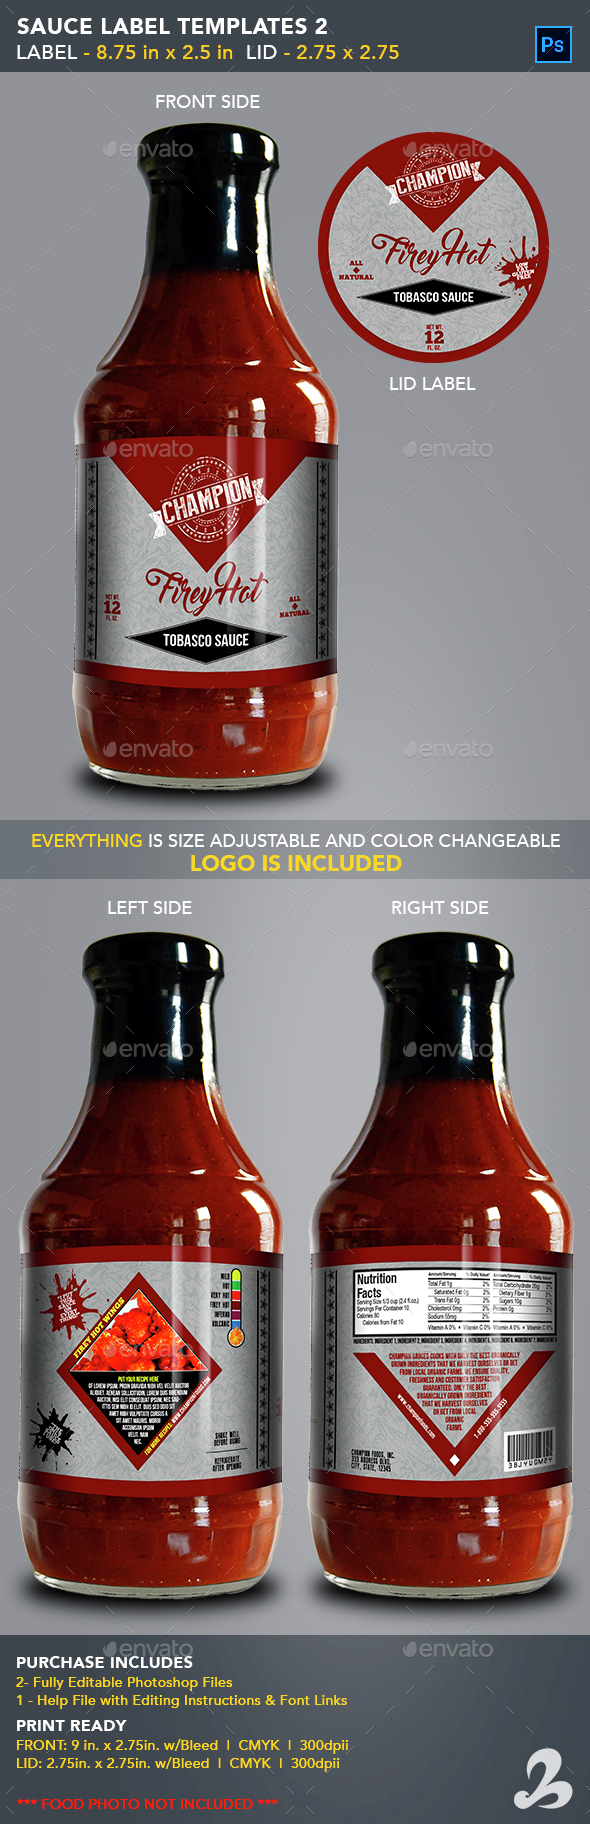 Sauce jar label templates 2 generic by creativb for Bbq sauce label template